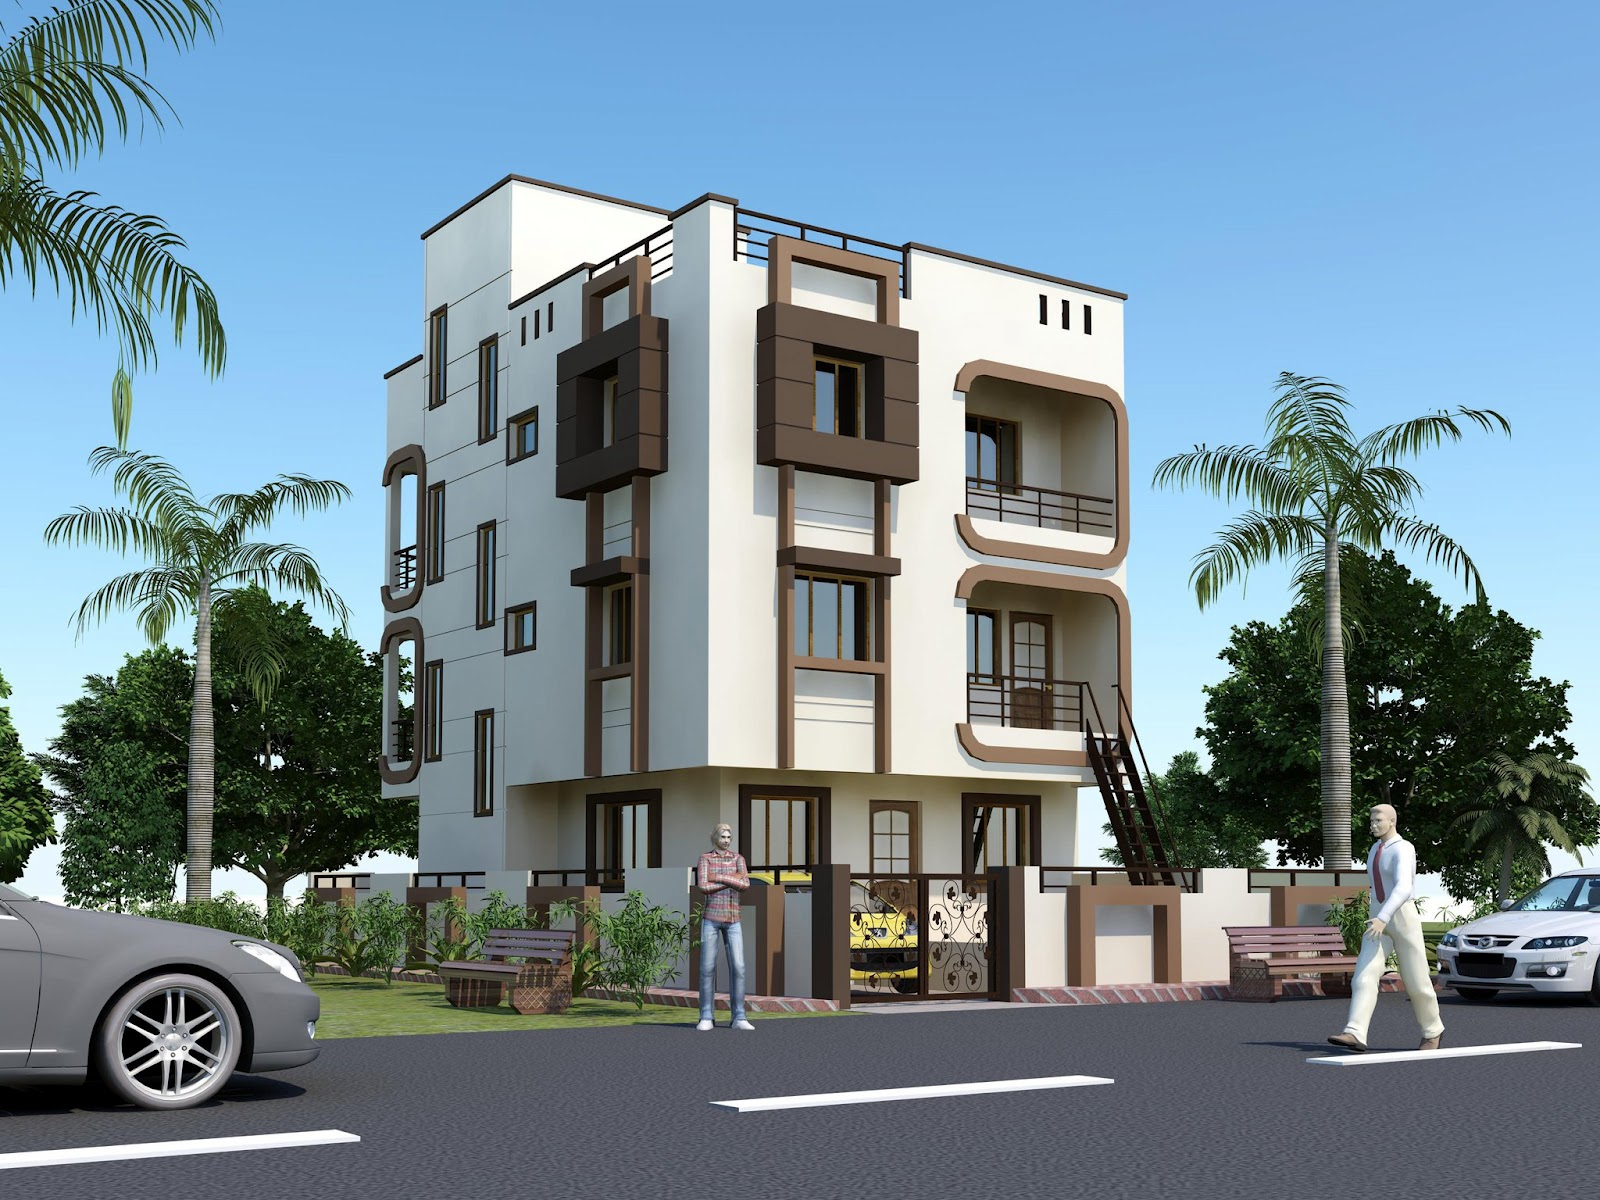 New home designs latest modern homes exterior designs for Home design exterior ideas in india